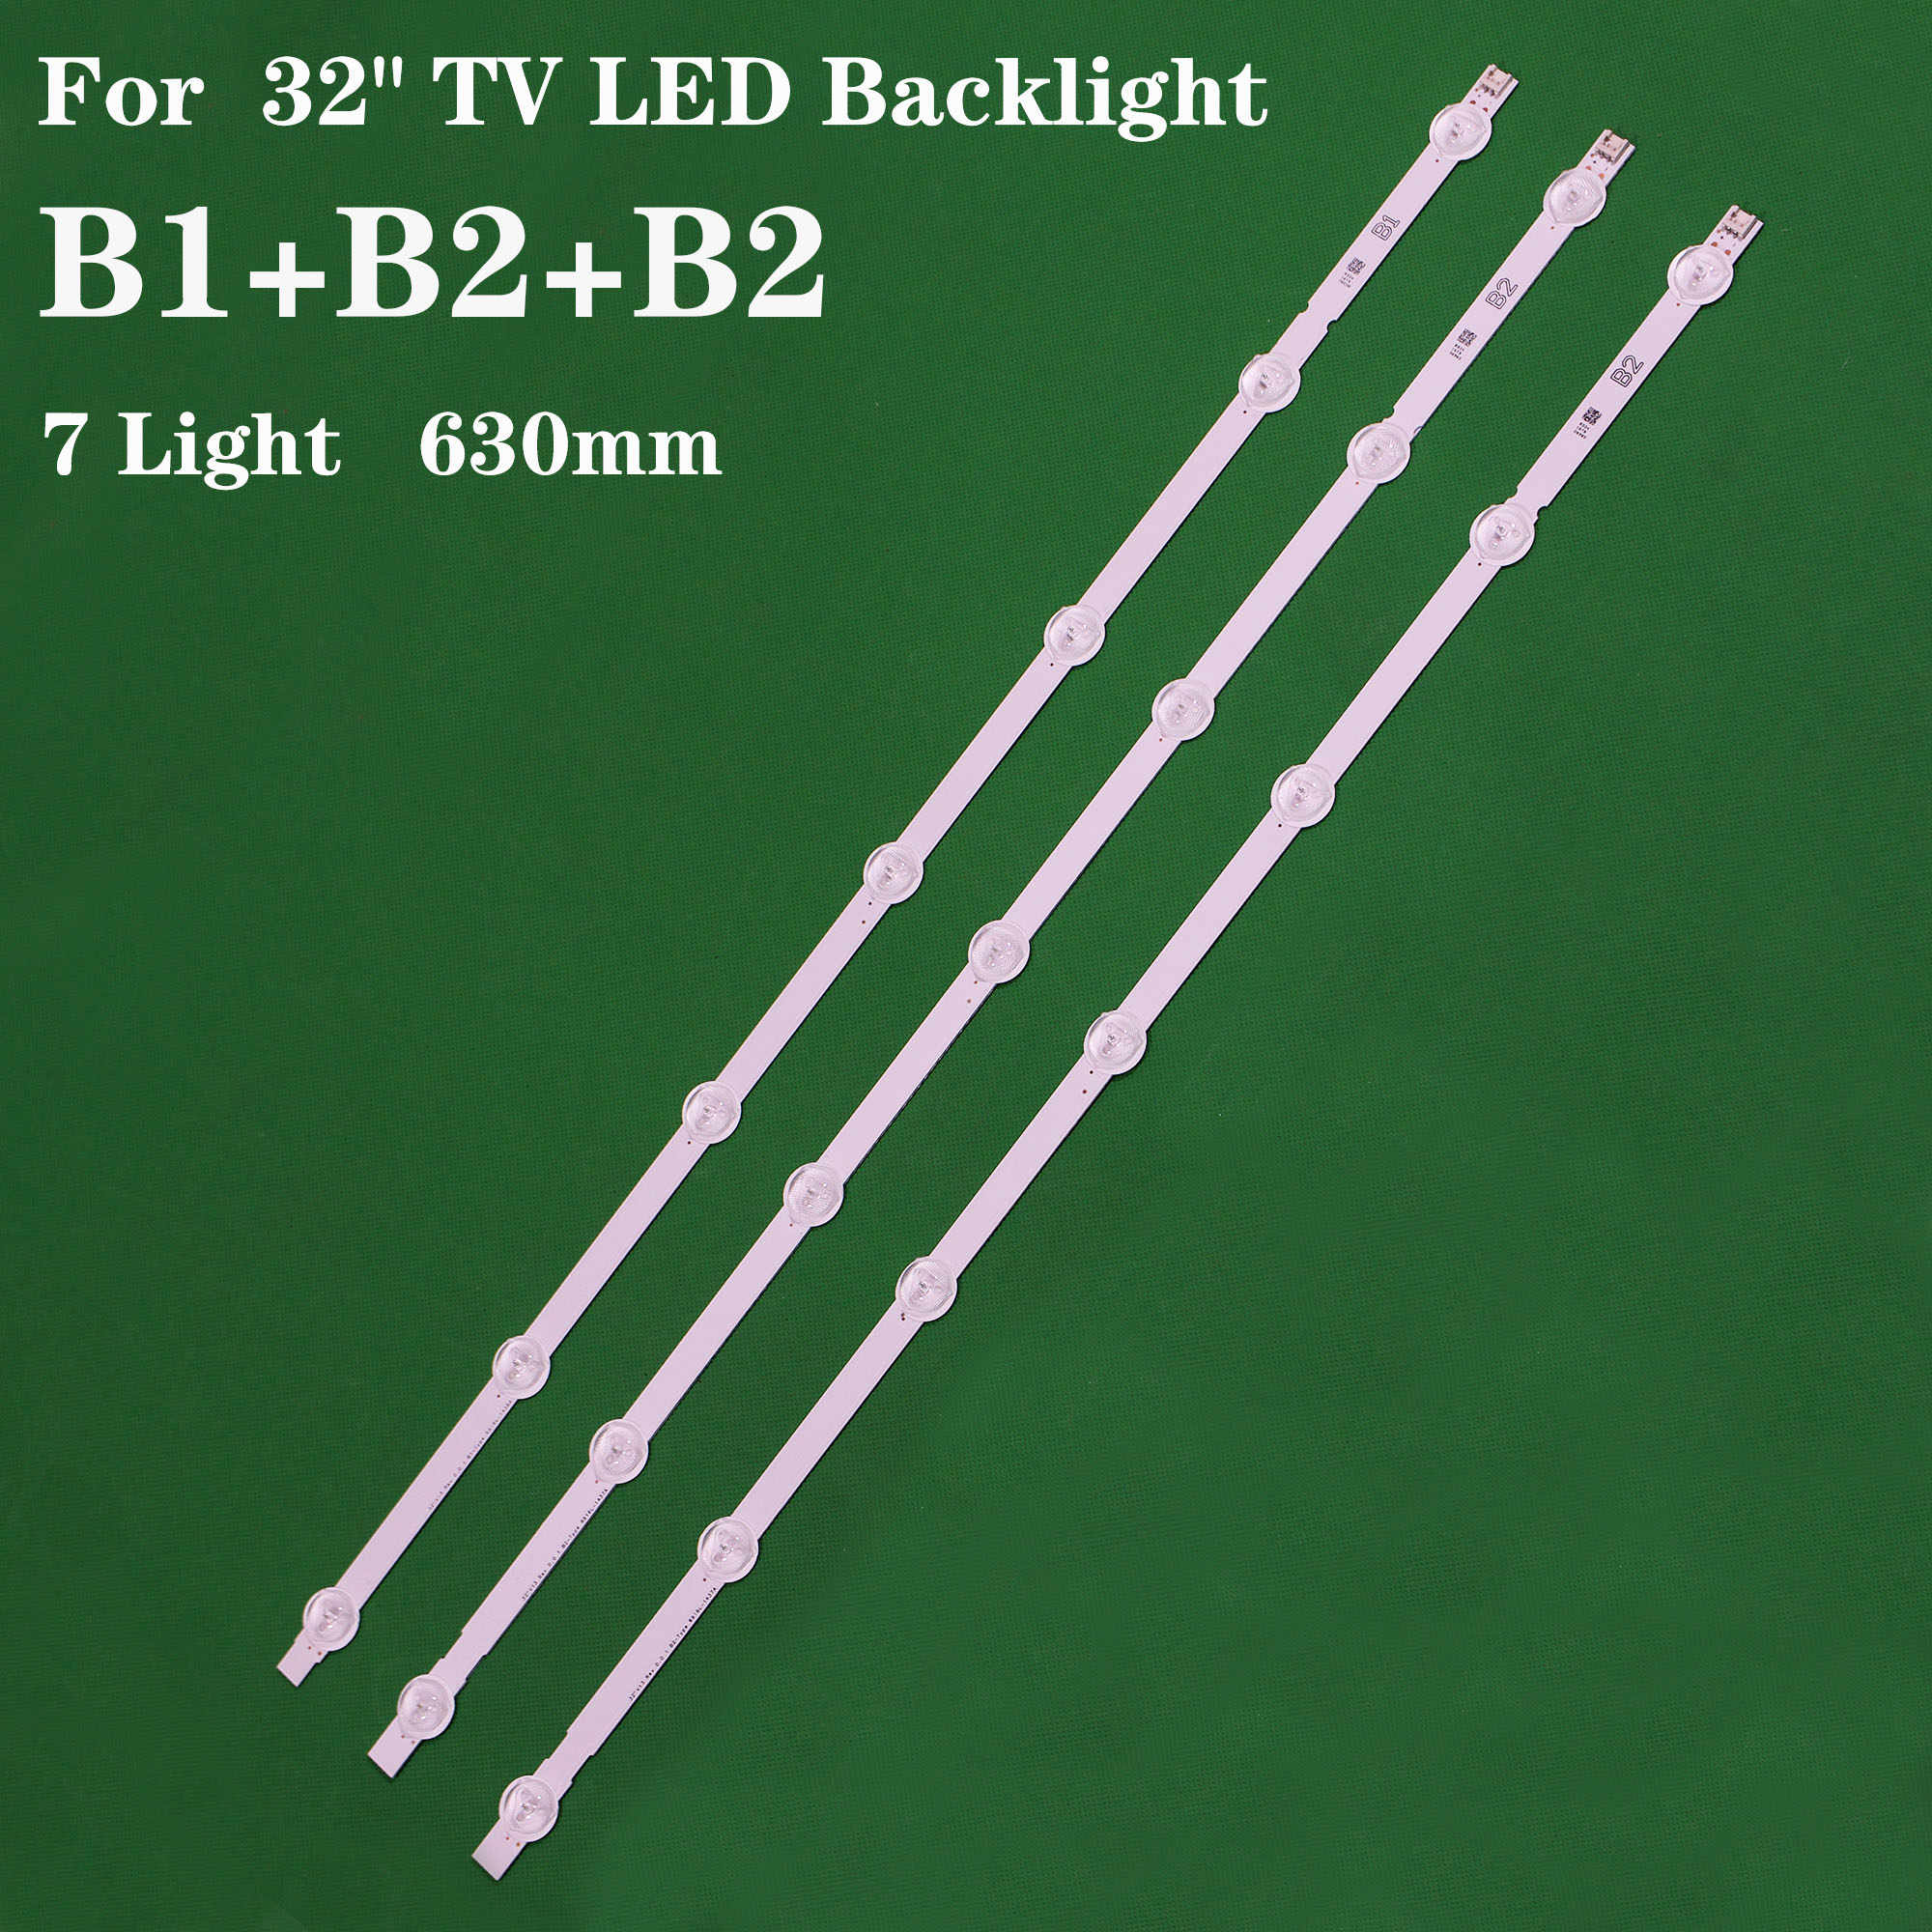 Cables 630mm 7 LED Backlight Lamp Strip for LG 32 TV 32ln541v 32LN540V A1//B1//B2-Type 6916L-1204A 6916L-1426A 6916L-1437A 6916L-1438A Occus Cable Length: Other, Color: 5lot